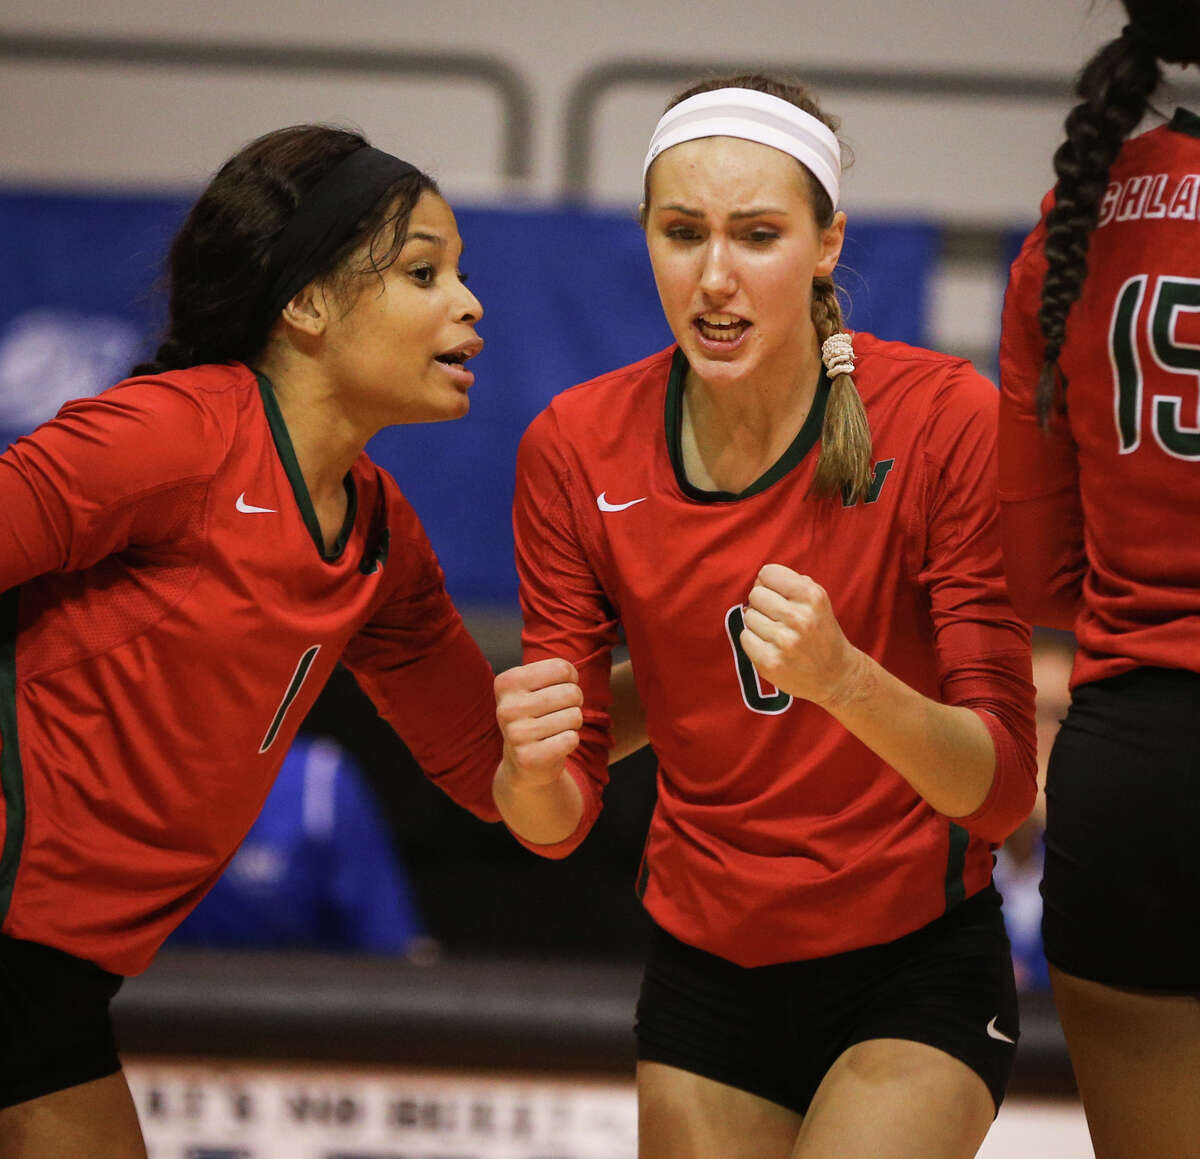 The Woodlands' Courtney Heiser (6) rallies with teammates during the varsity volleyball game against Westwood on Friday, Nov. 11, 2016, at Johnson Coliseum in Huntsville, Texas. (Michael Minasi / Chronicle)